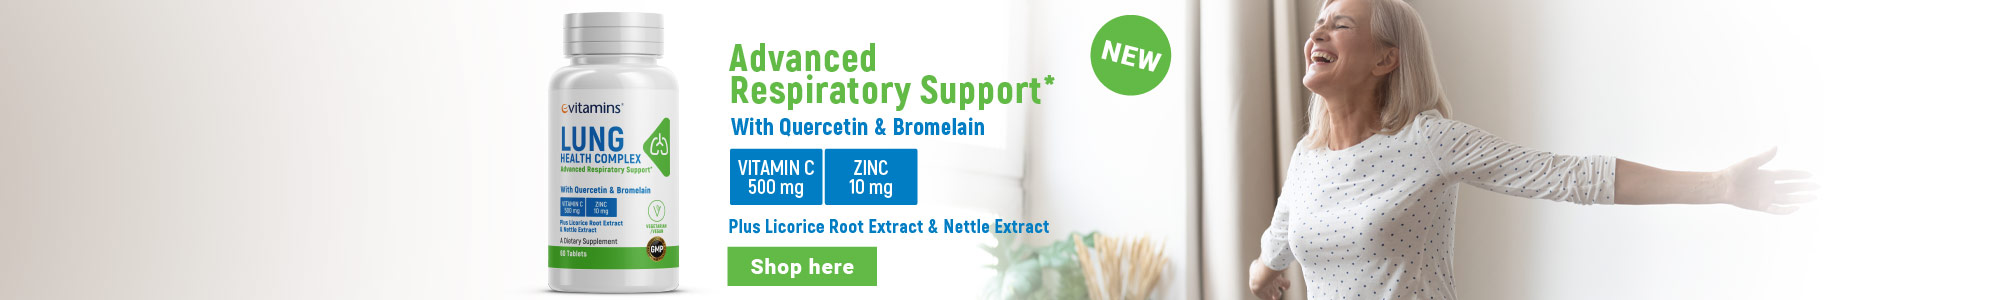 NEW - Advanced Respiratory Support* With Quercetin & Bromelain. VITAMIN C 500 mg. ZINC 10 mg. Plus Licorice Root Extract & Nettle Extract. Shop here